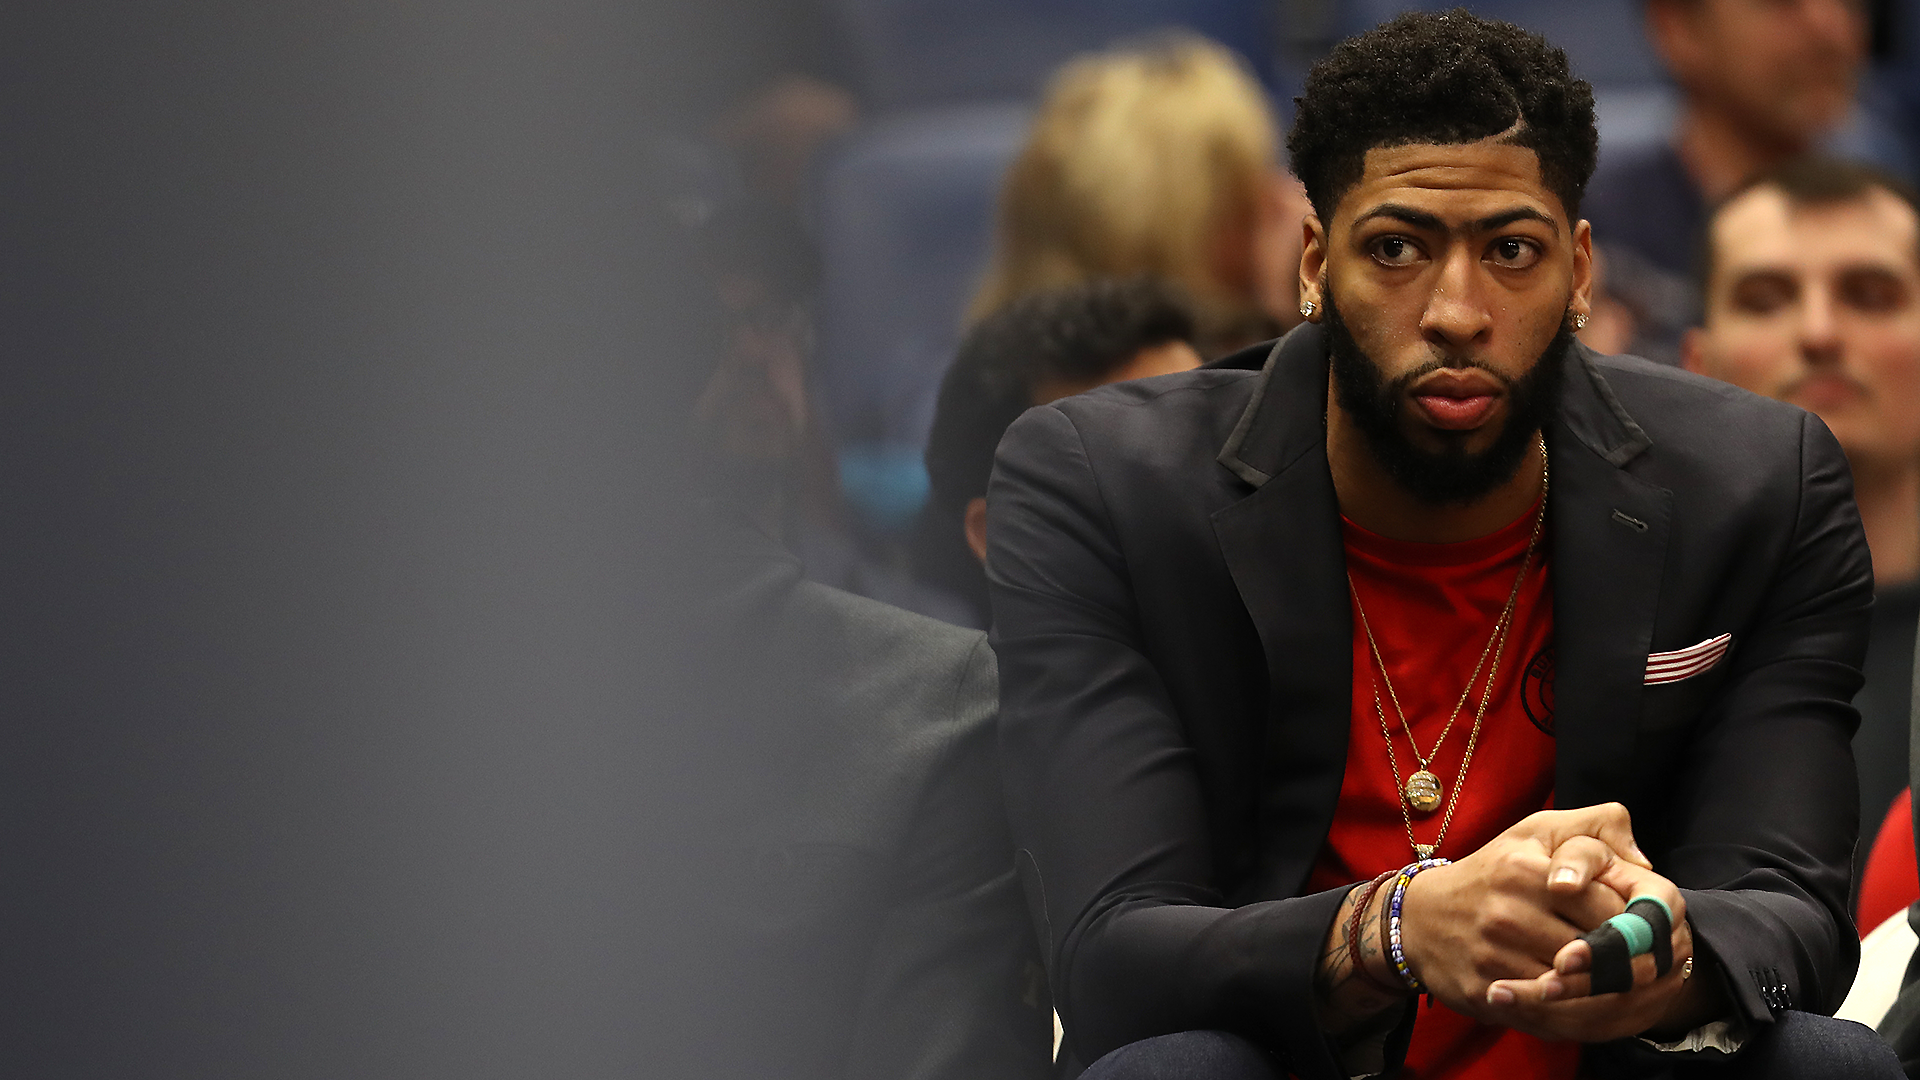 National Basketball Association fans were already making LeBron jokes about Anthony Davis' $50K fine